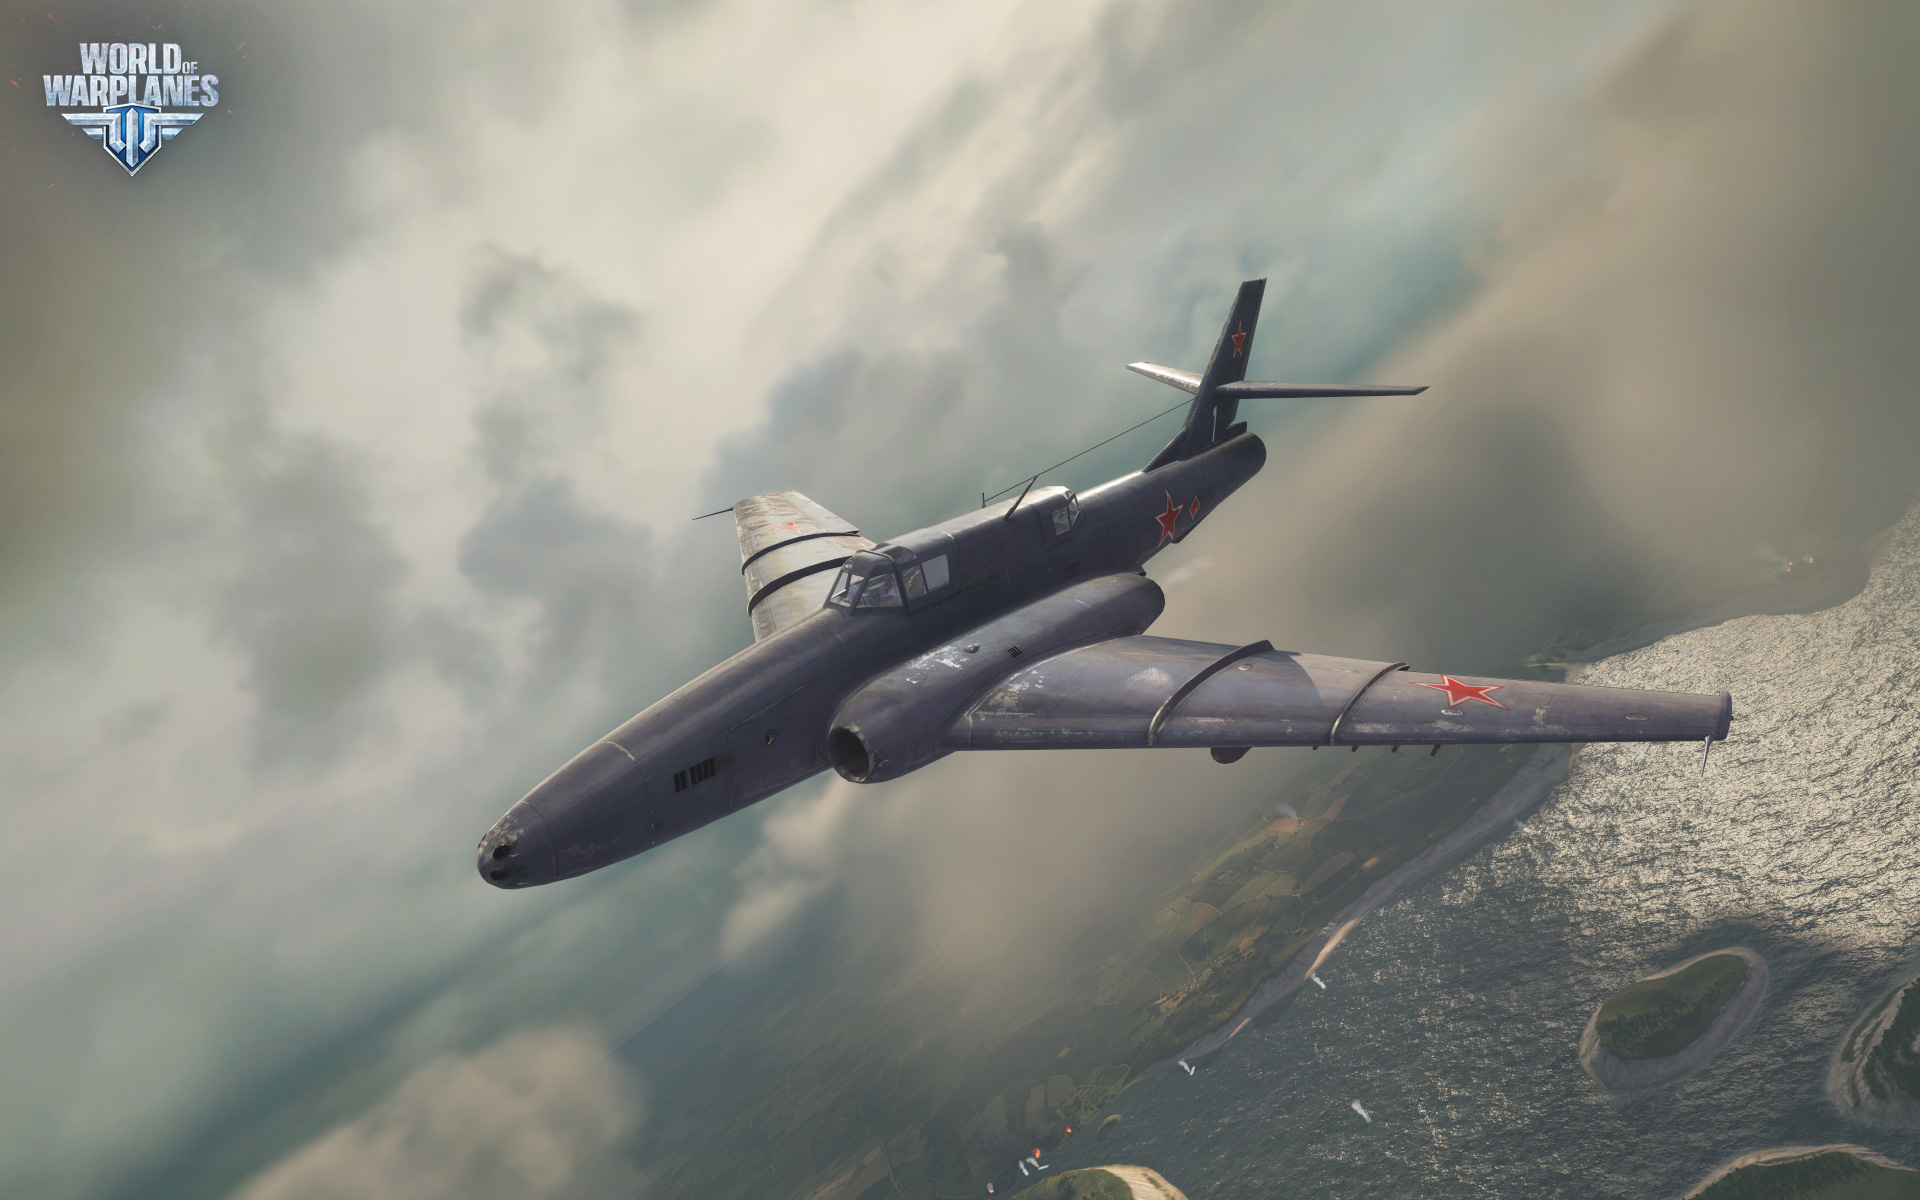 WoT_Screens_Planes_Image_11